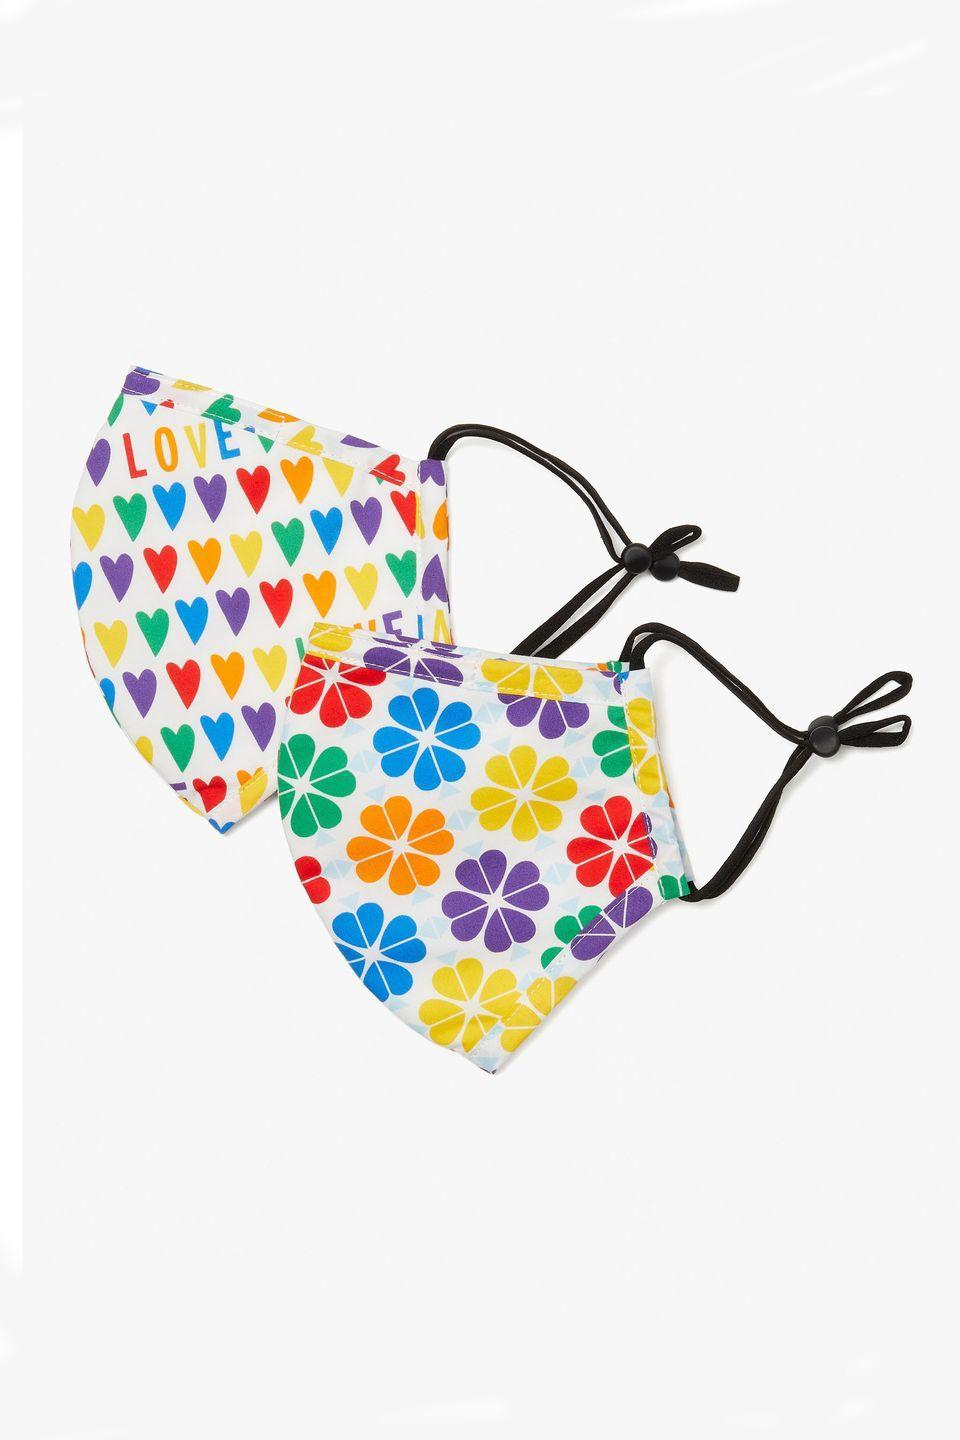 """<p><a class=""""link rapid-noclick-resp"""" href=""""https://go.redirectingat.com?id=127X1599956&url=https%3A%2F%2Fwww.katespade.com%2Fproducts%2Frainbow-hearts-spade-flower-non-medical-mask-set%2FPSR00010.html%3Fcgid%3Dks-rainbow-shop&sref=https%3A%2F%2Fwww.harpersbazaar.com%2Fuk%2Ffashion%2Fg28117677%2Fpride-fashion%2F"""" rel=""""nofollow noopener"""" target=""""_blank"""" data-ylk=""""slk:SHOP NOW"""">SHOP NOW</a></p><p>New York label Kate Spade will donate 20 per cent of proceeds from its Rainbow Shop to the Trevor Project to support the mental health of the young LGBTQ+ community. The make-up bags and vibrant slides are great, but we'll be brightening up our mask collection with these optimistic new styles.</p><p>Hearts and spade mask set, £15, Kate Spade</p>"""